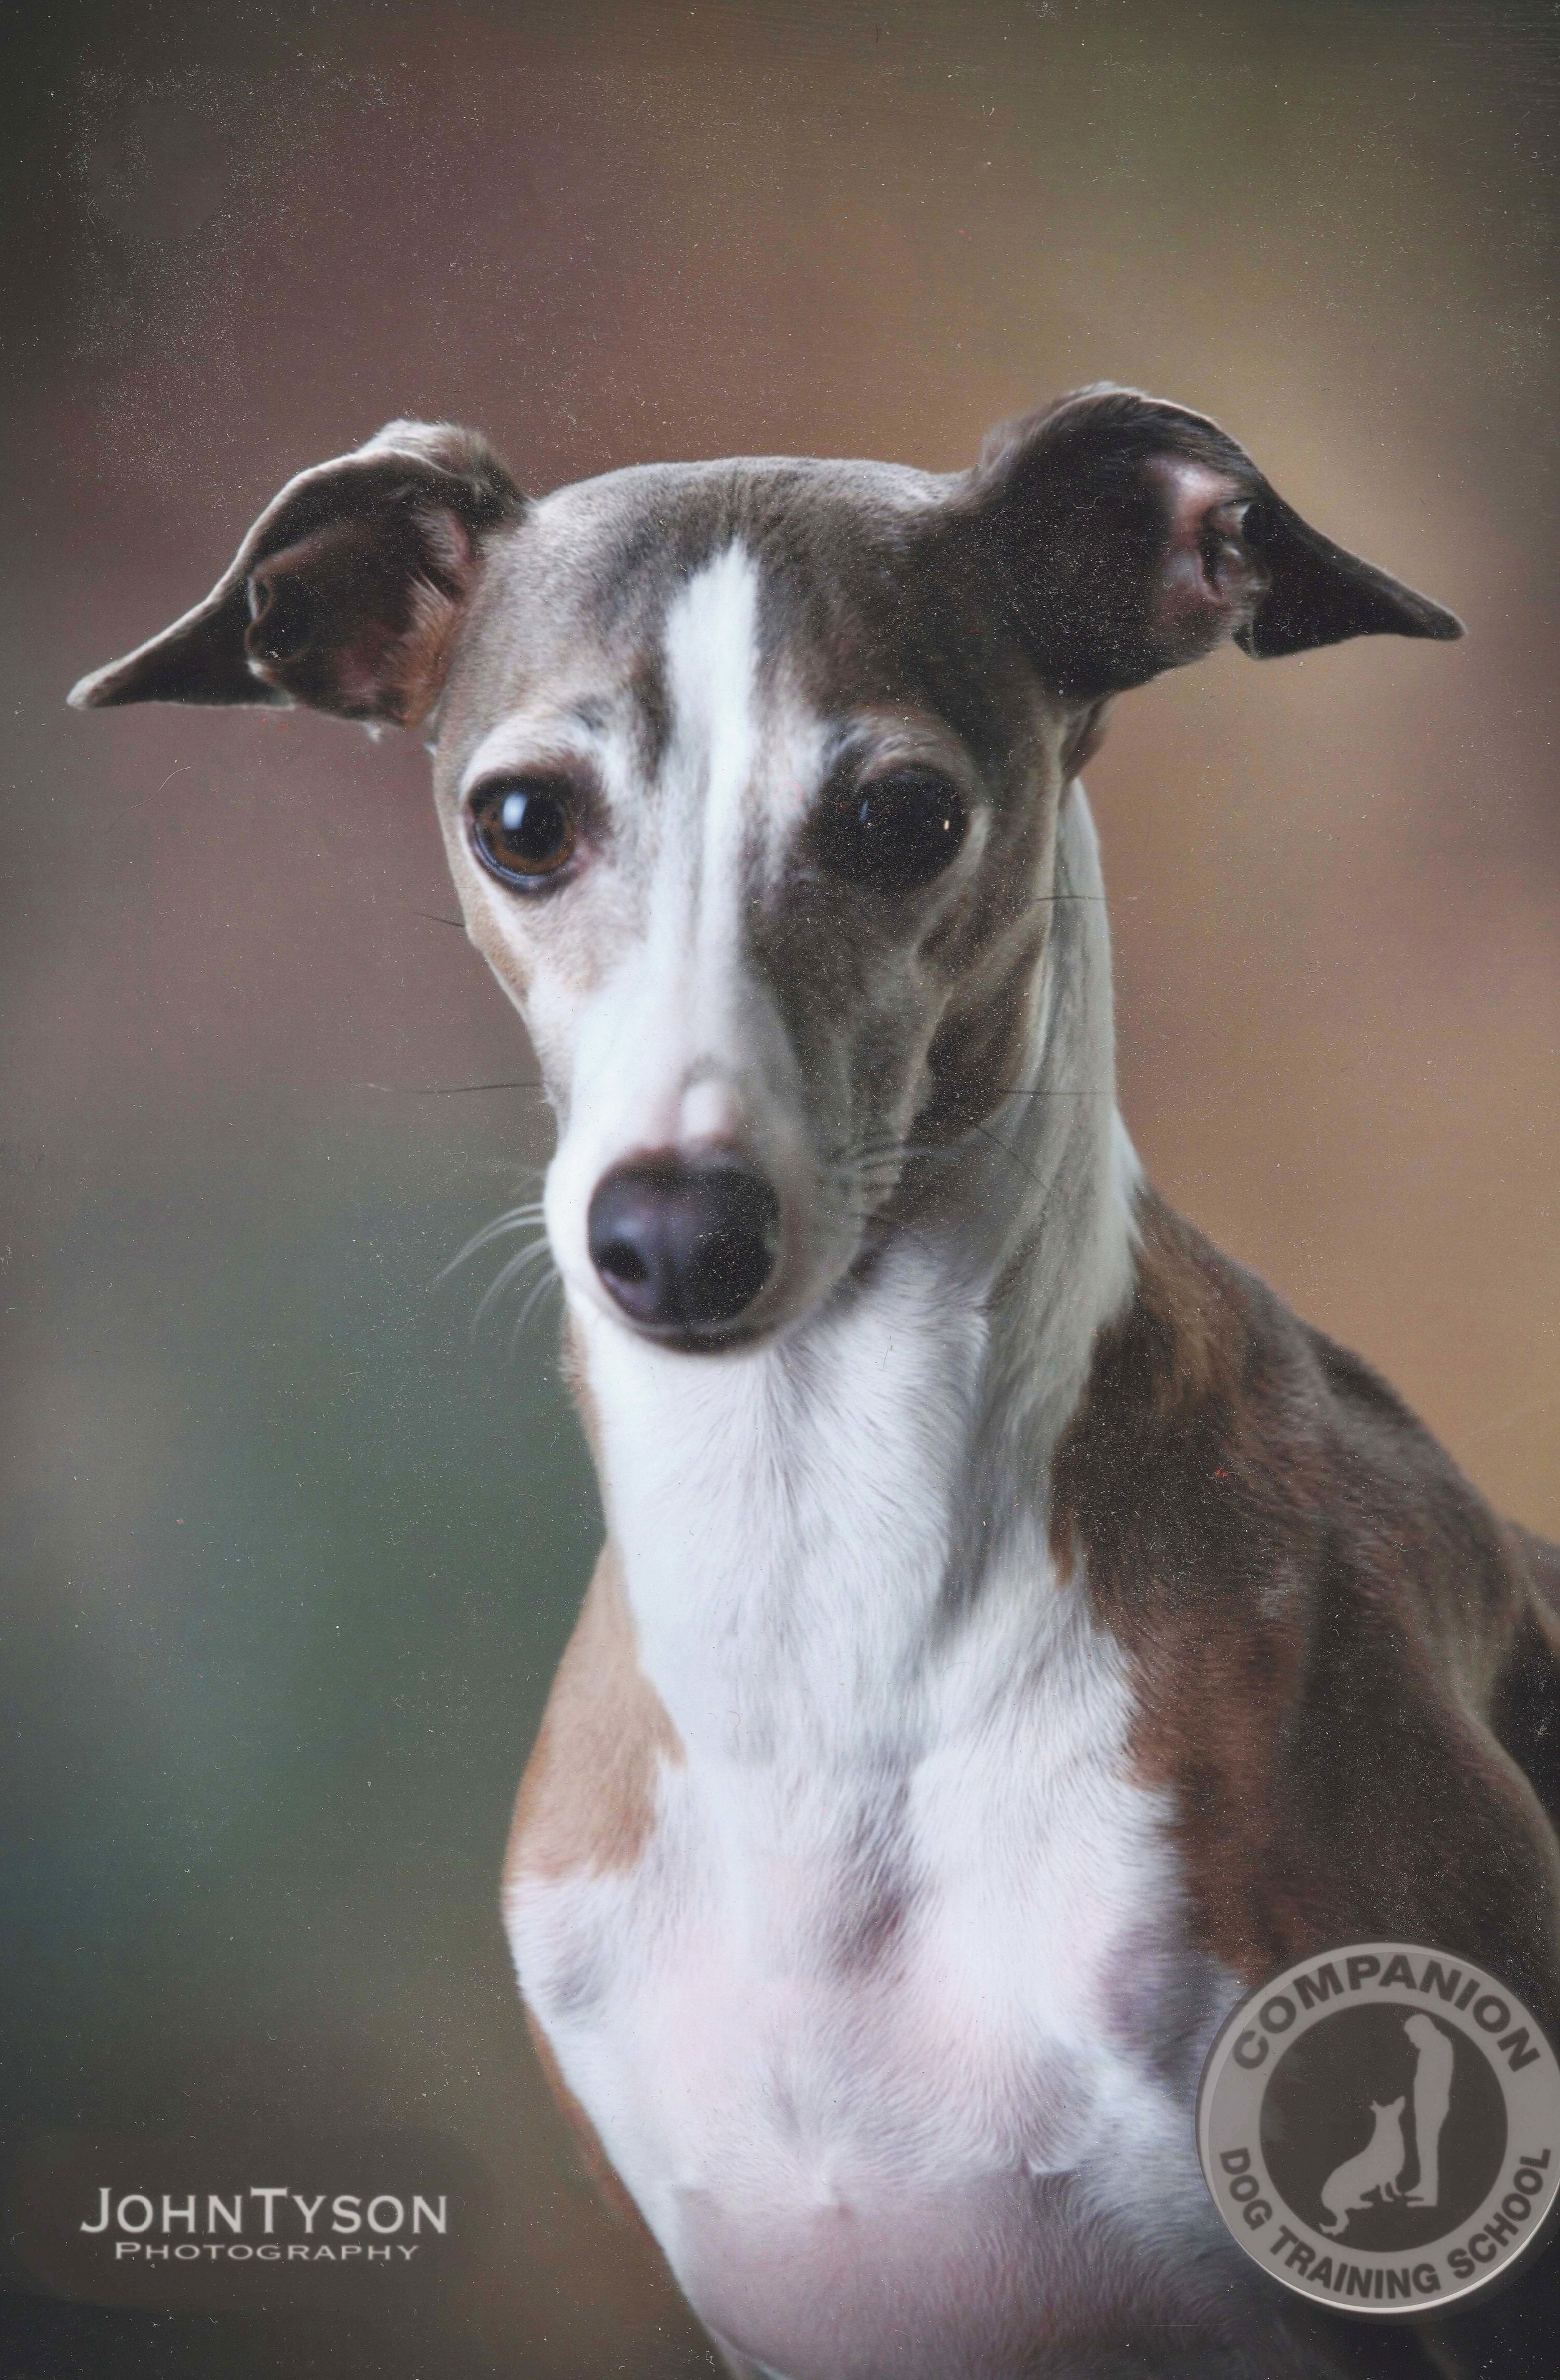 Sunny   , an Italian greyhound, was an abandoned pup who literally danced on her hind legs when she was adopted! She loves people and especially kids.